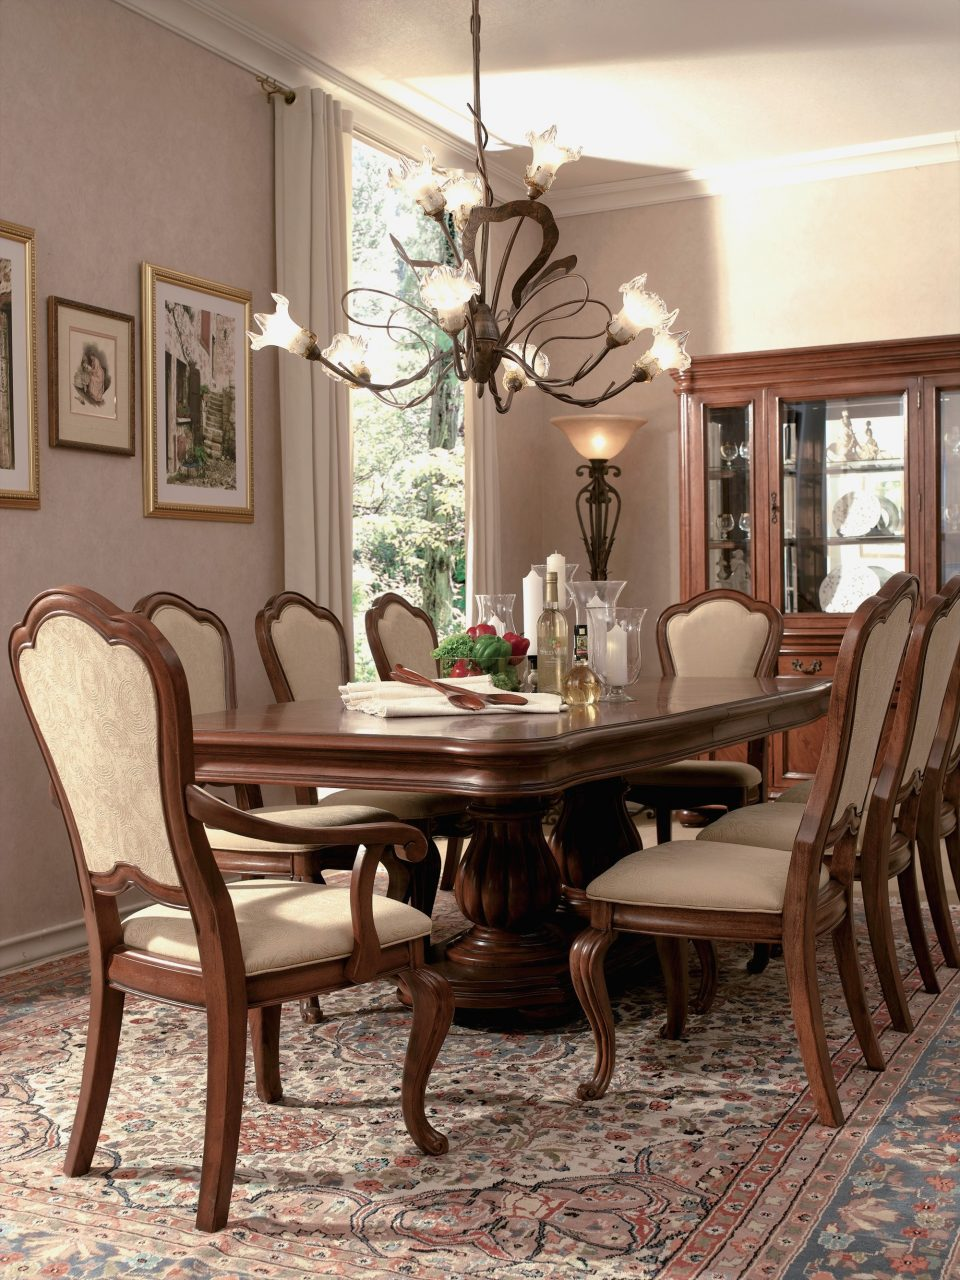 55 Dining Room Sets Slumberland Large Images Of Slumberland